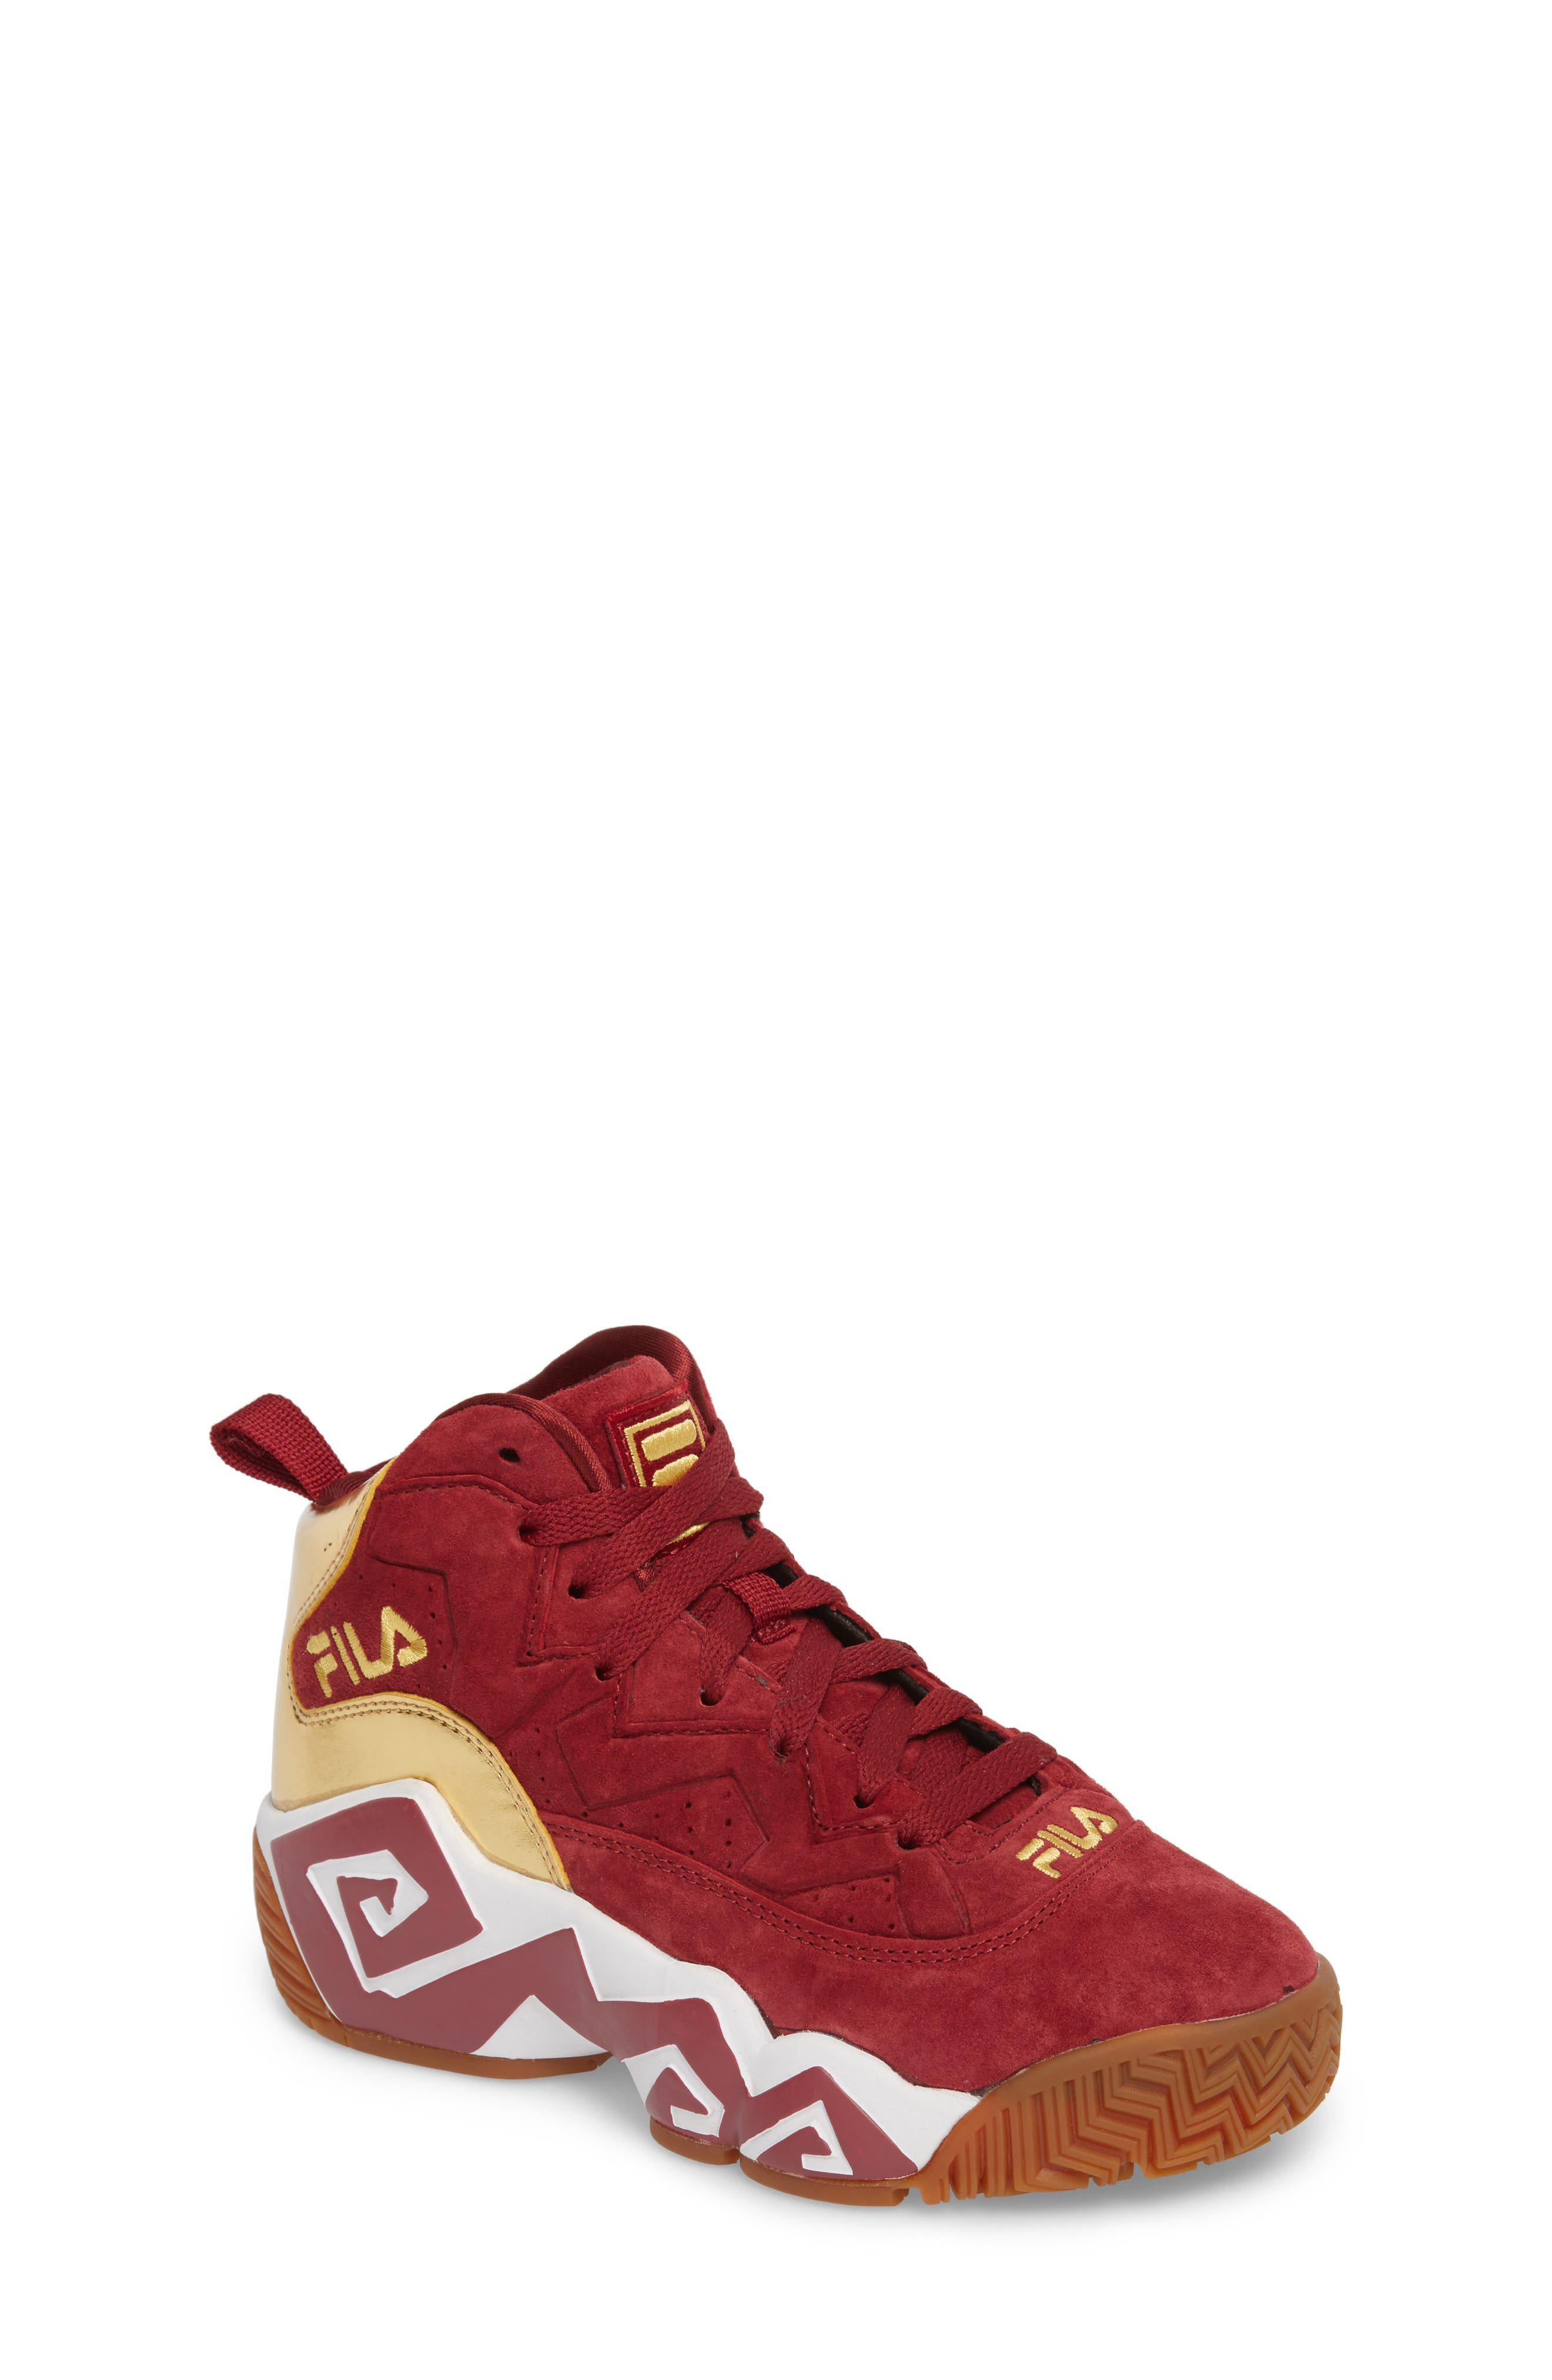 FILA, Heritage Sneaker, Main thumbnail 1, color, BIKING RED/ GOLD/ WHITE